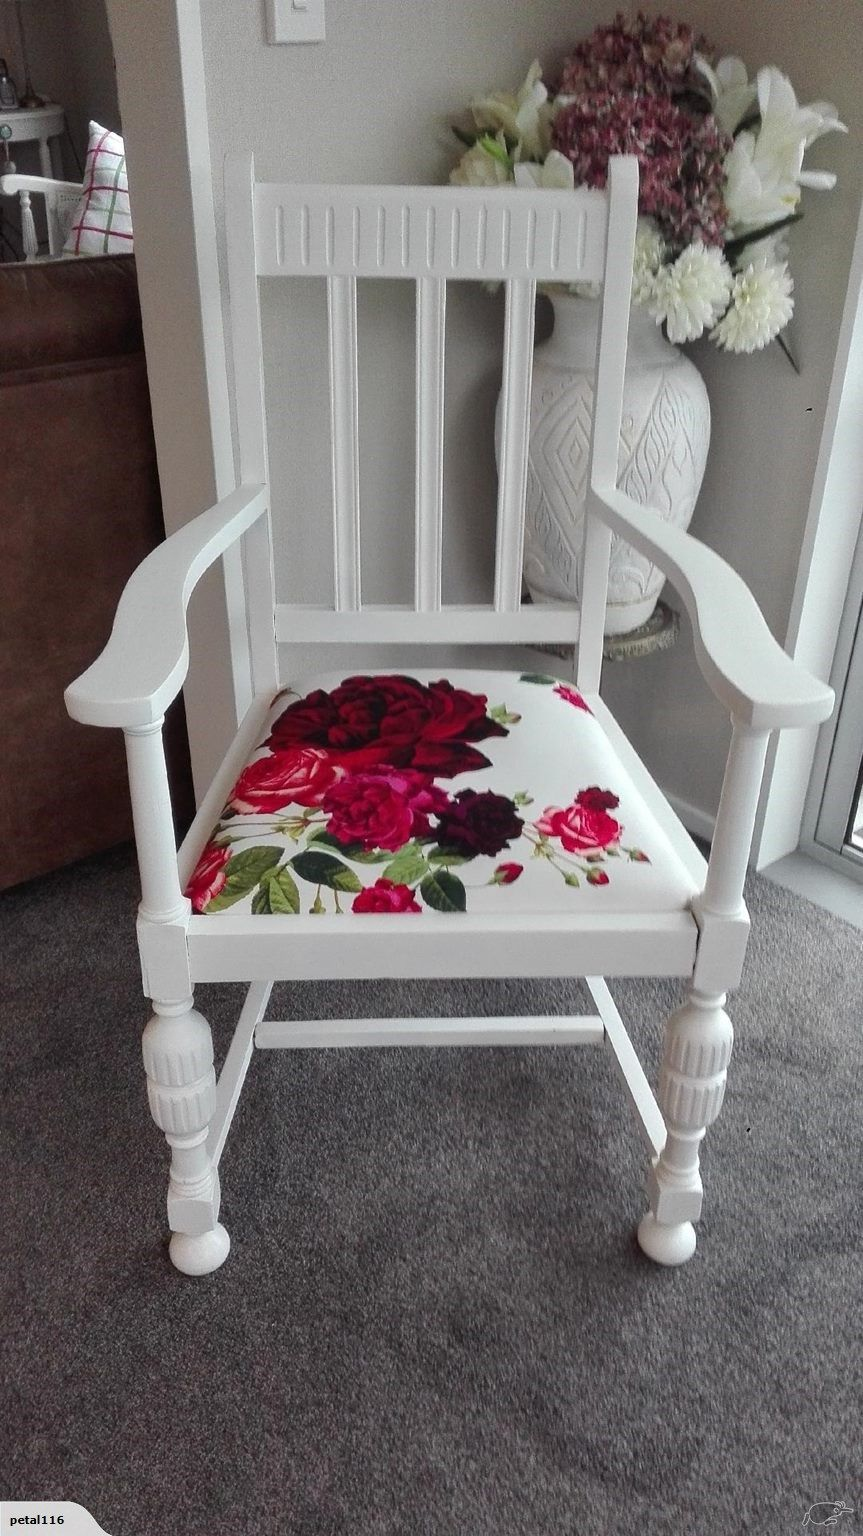 Absolutely stunning chair trade me refurbished chairs